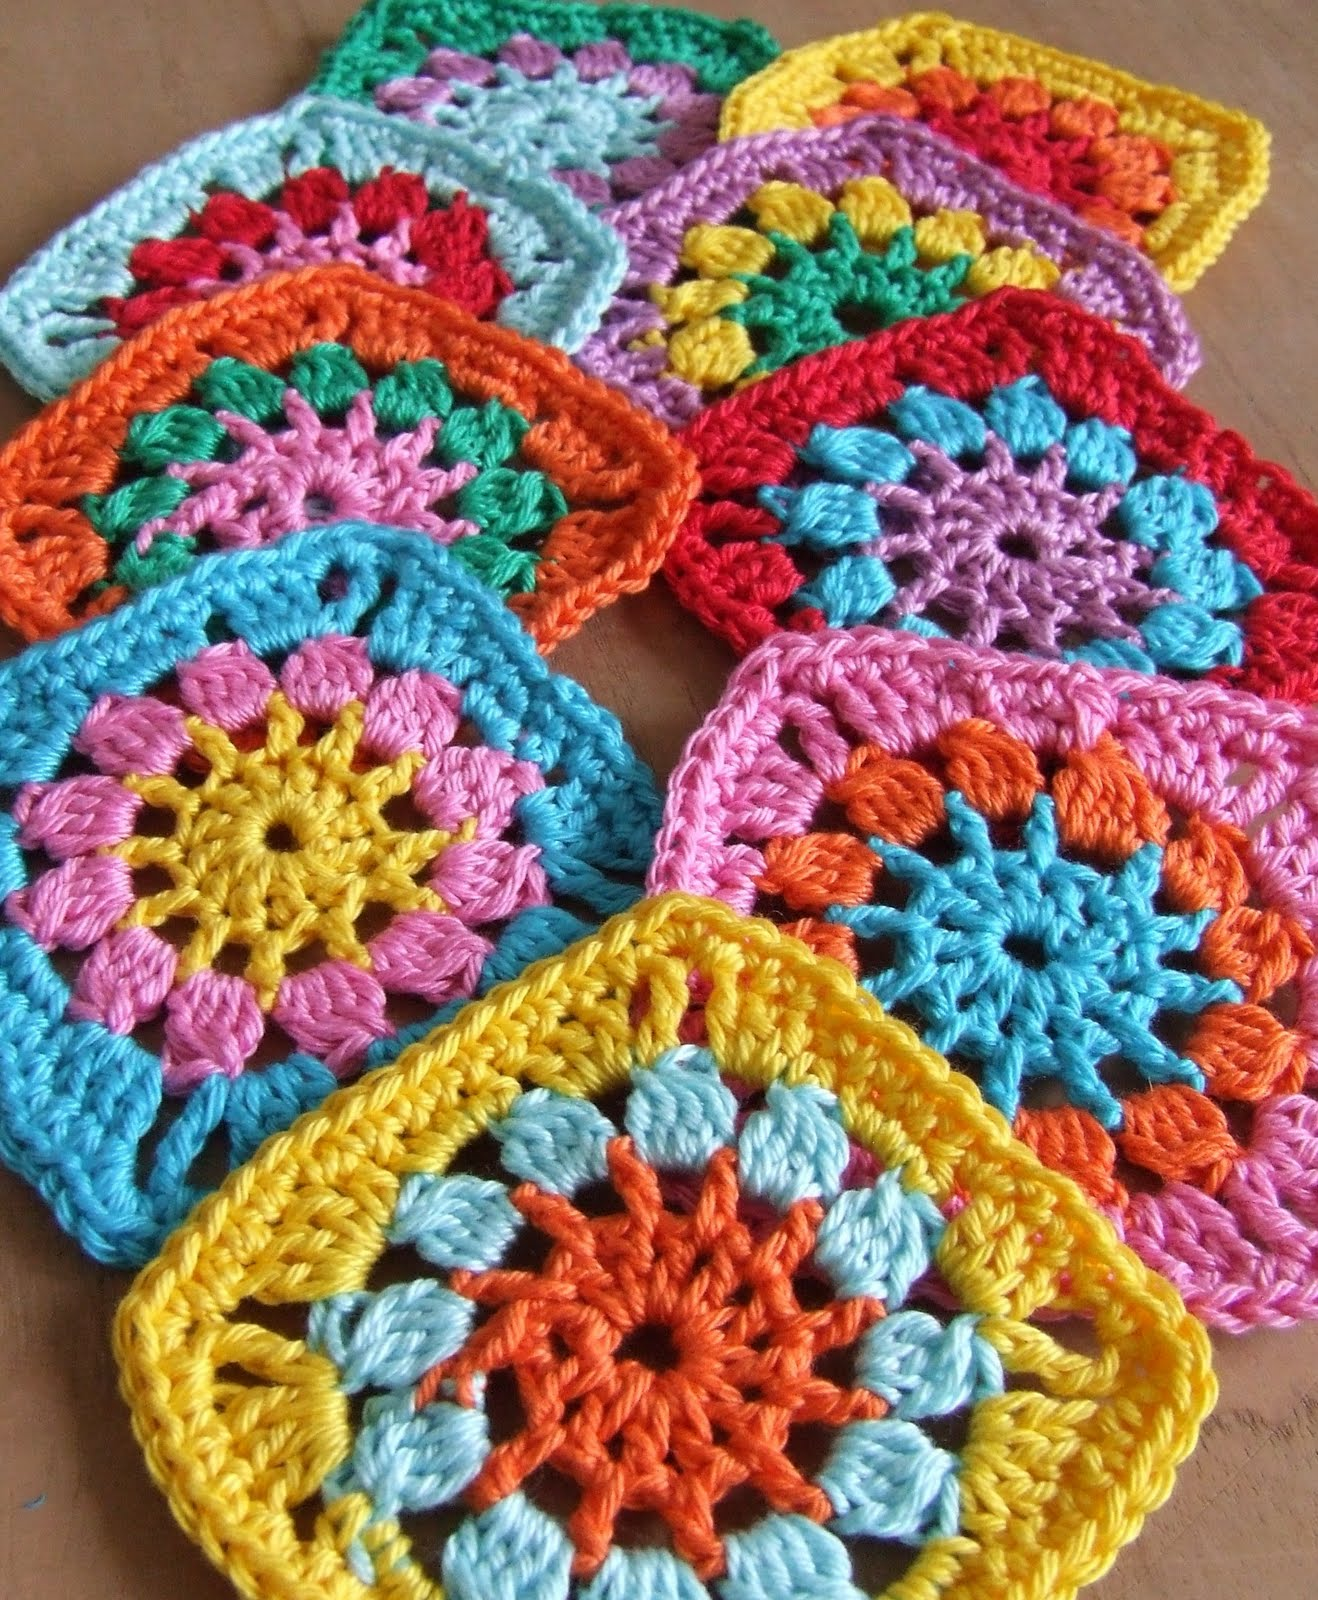 Crochet Granny Square : Crochet Baby Blanket Pattern Granny Square Crib by babywagz Images ...